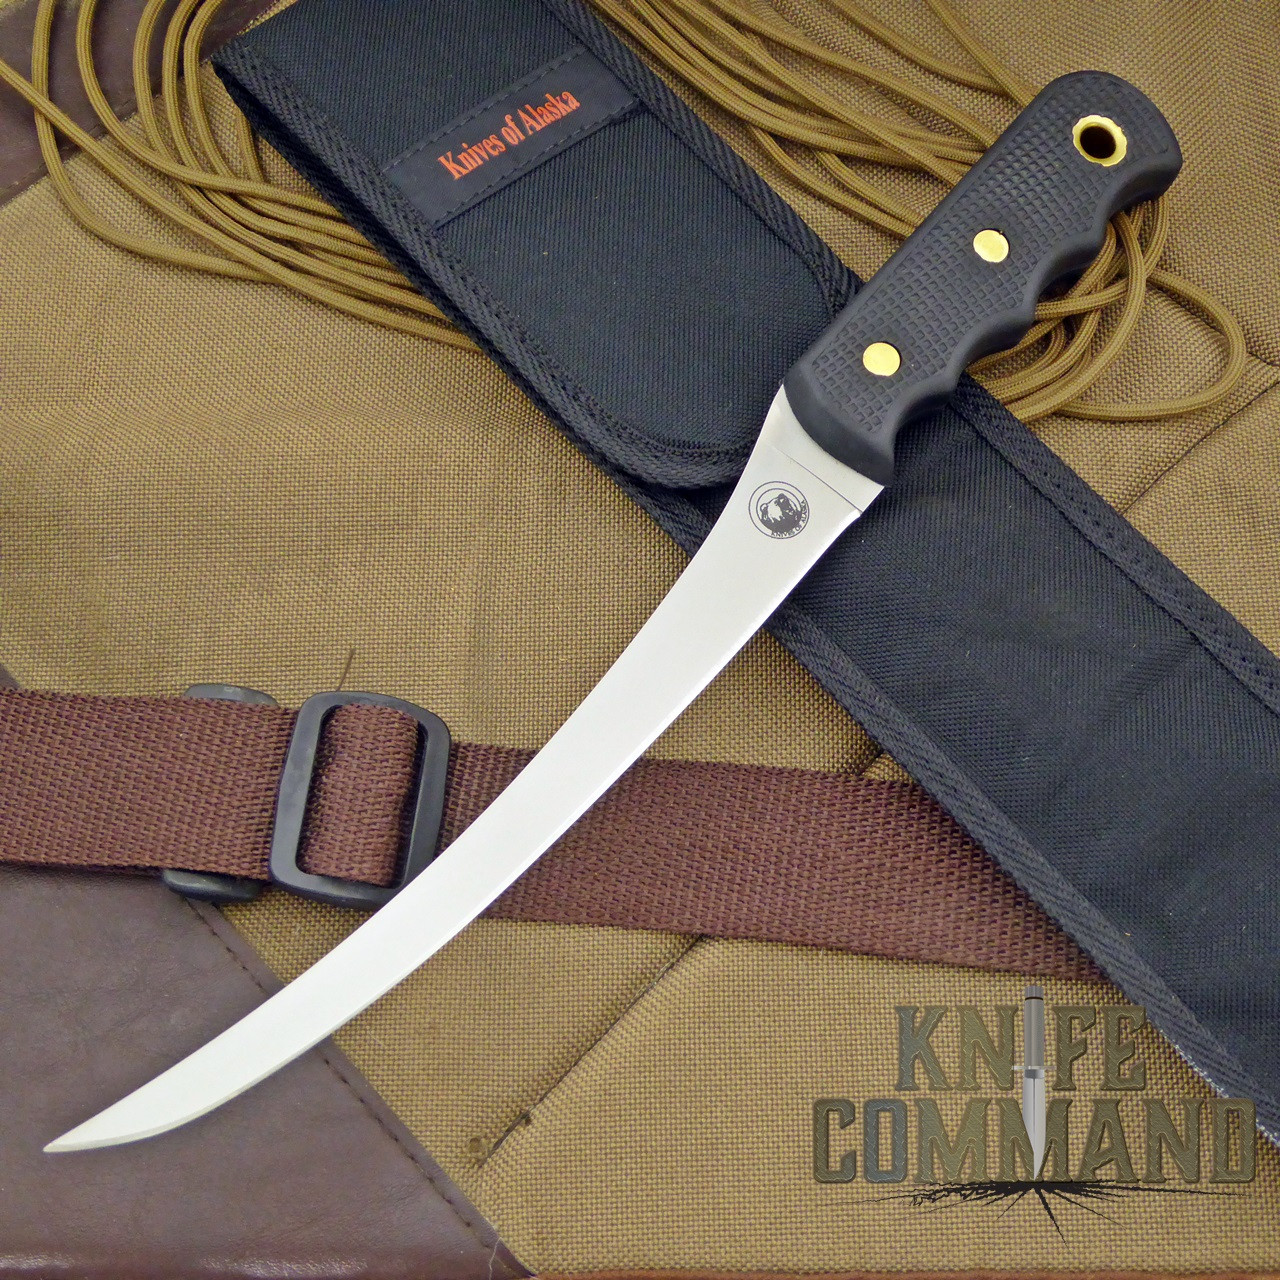 Knives of Alaska Coho Fillet Knife.  One of the best fillet knives available.